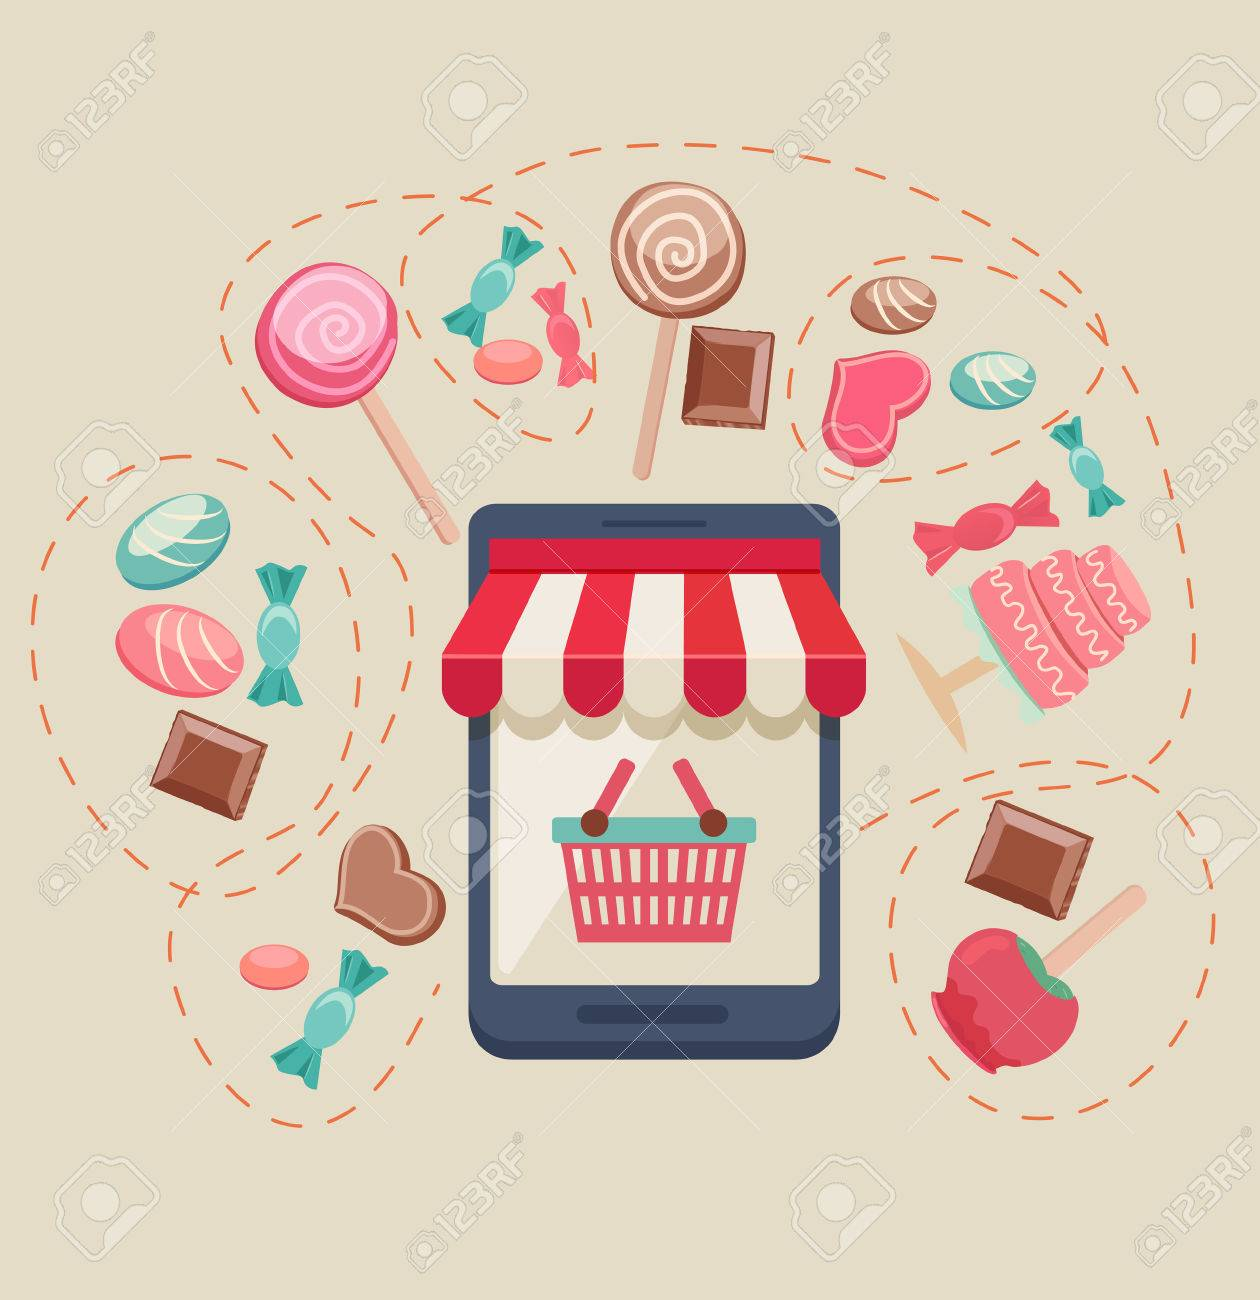 Sweet shop online store with a storefront icon with canopy, bags and buy button surrounded by assorted candy, chocolate, lollipops, toffee apple and a cake, vector illustration Stock Vector - 48104930